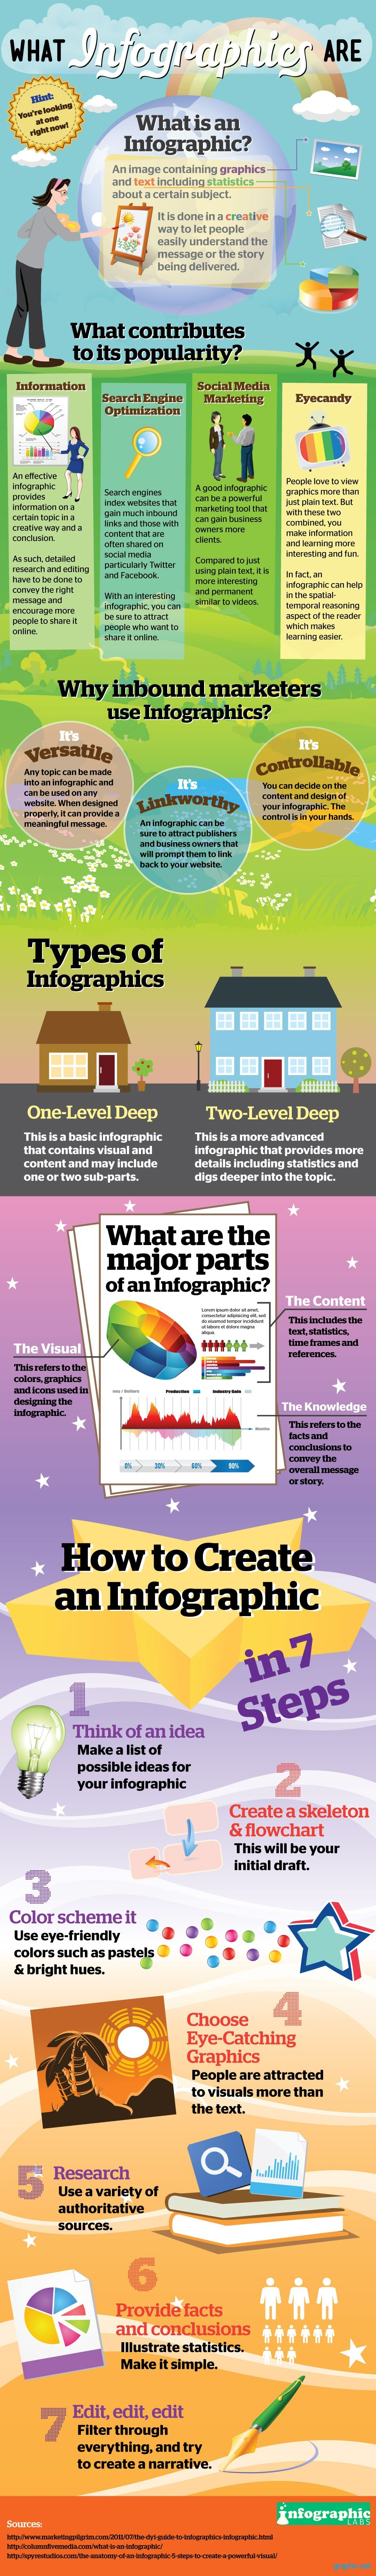 infographic Myths, and Facts